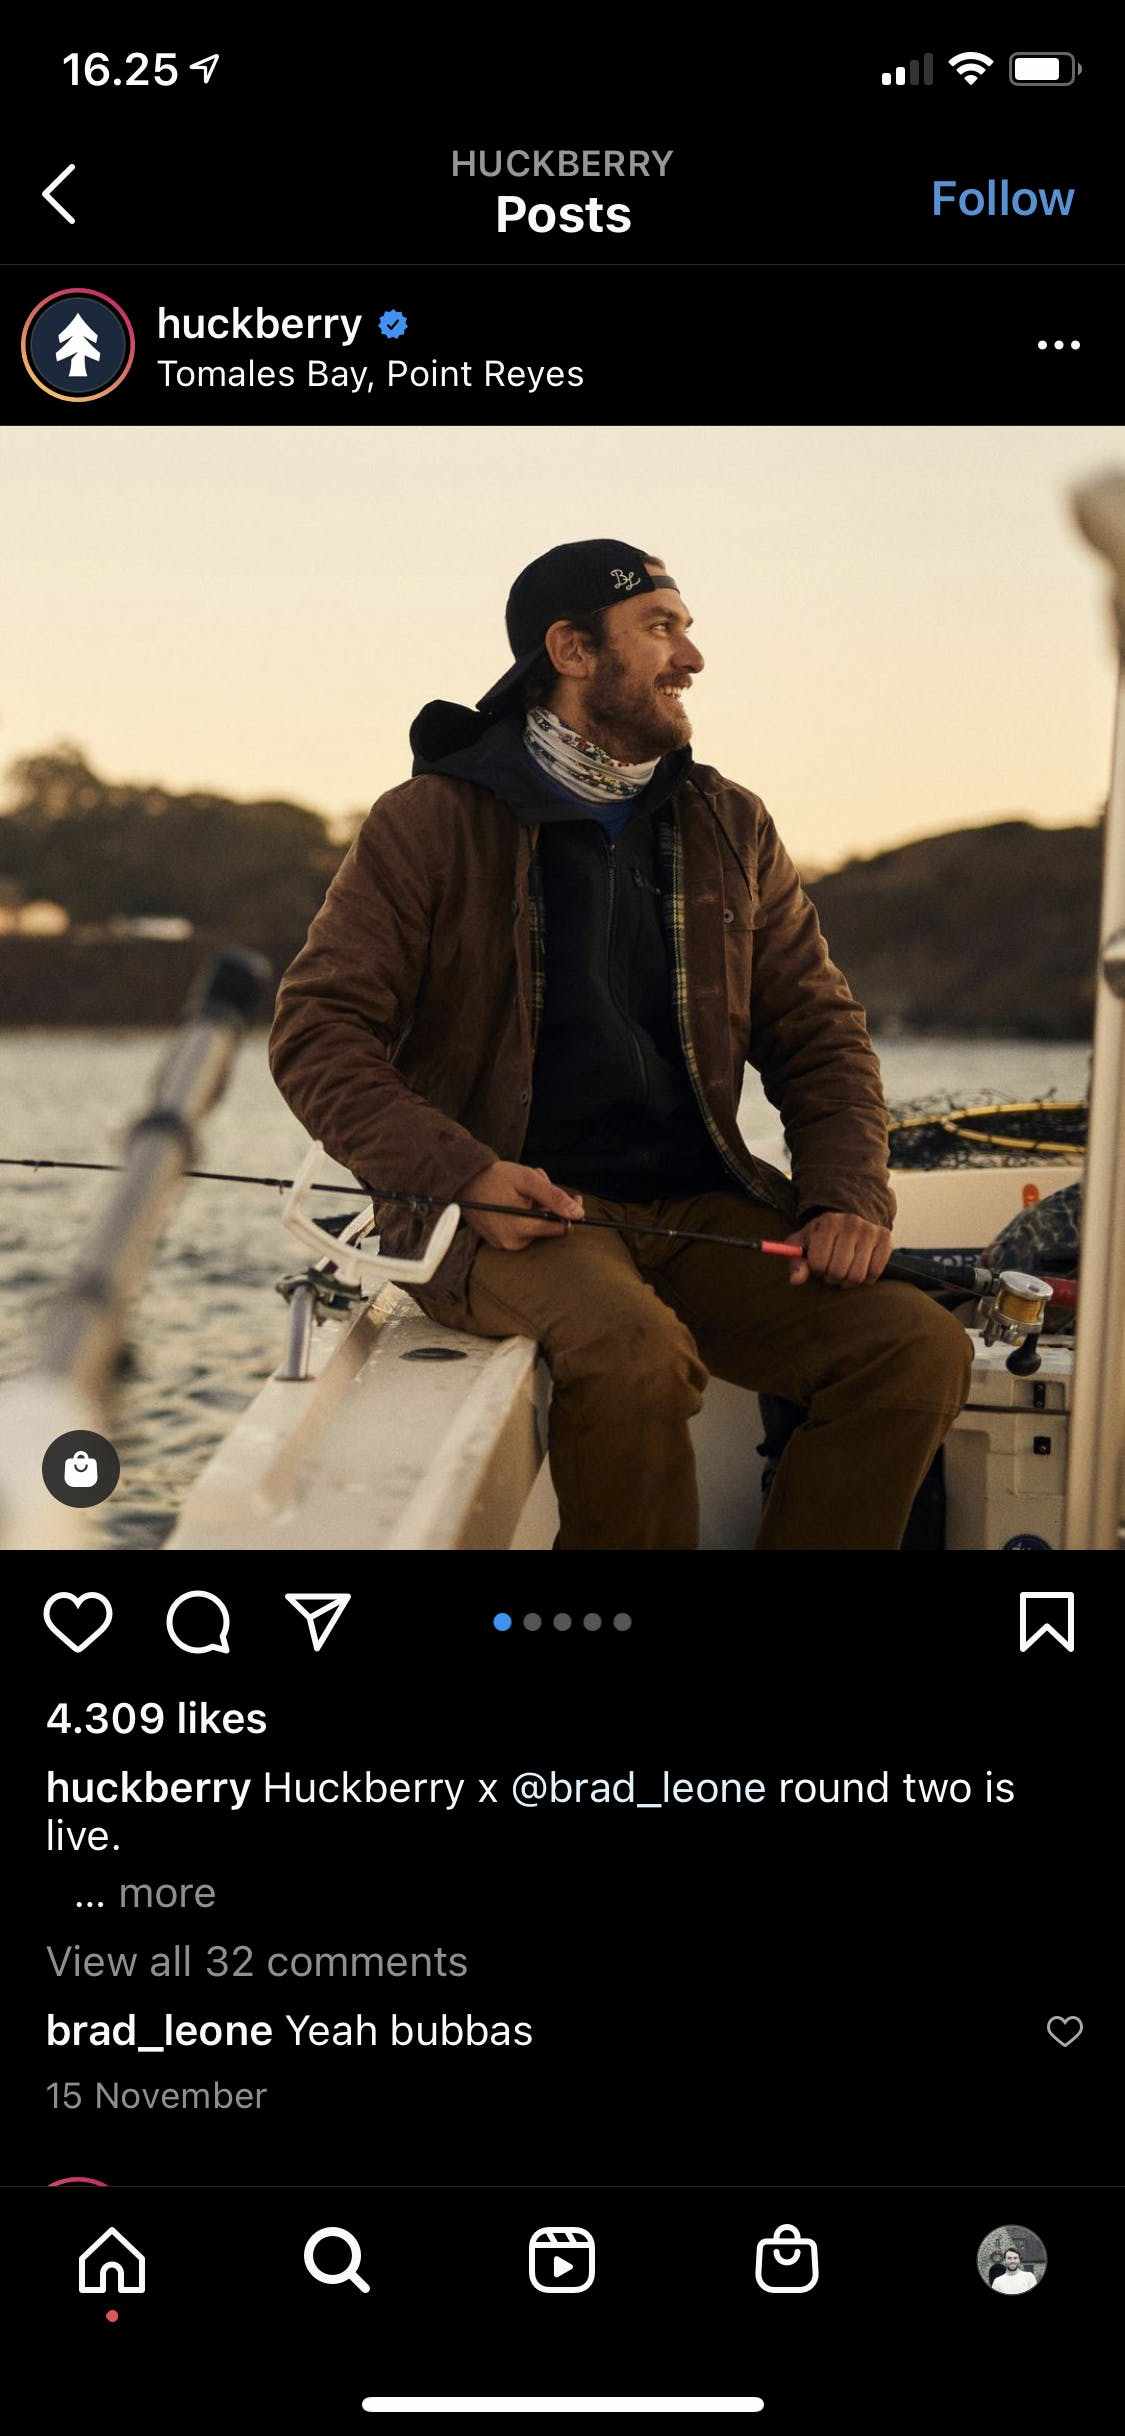 an image of model wearing Huckberry's clothing